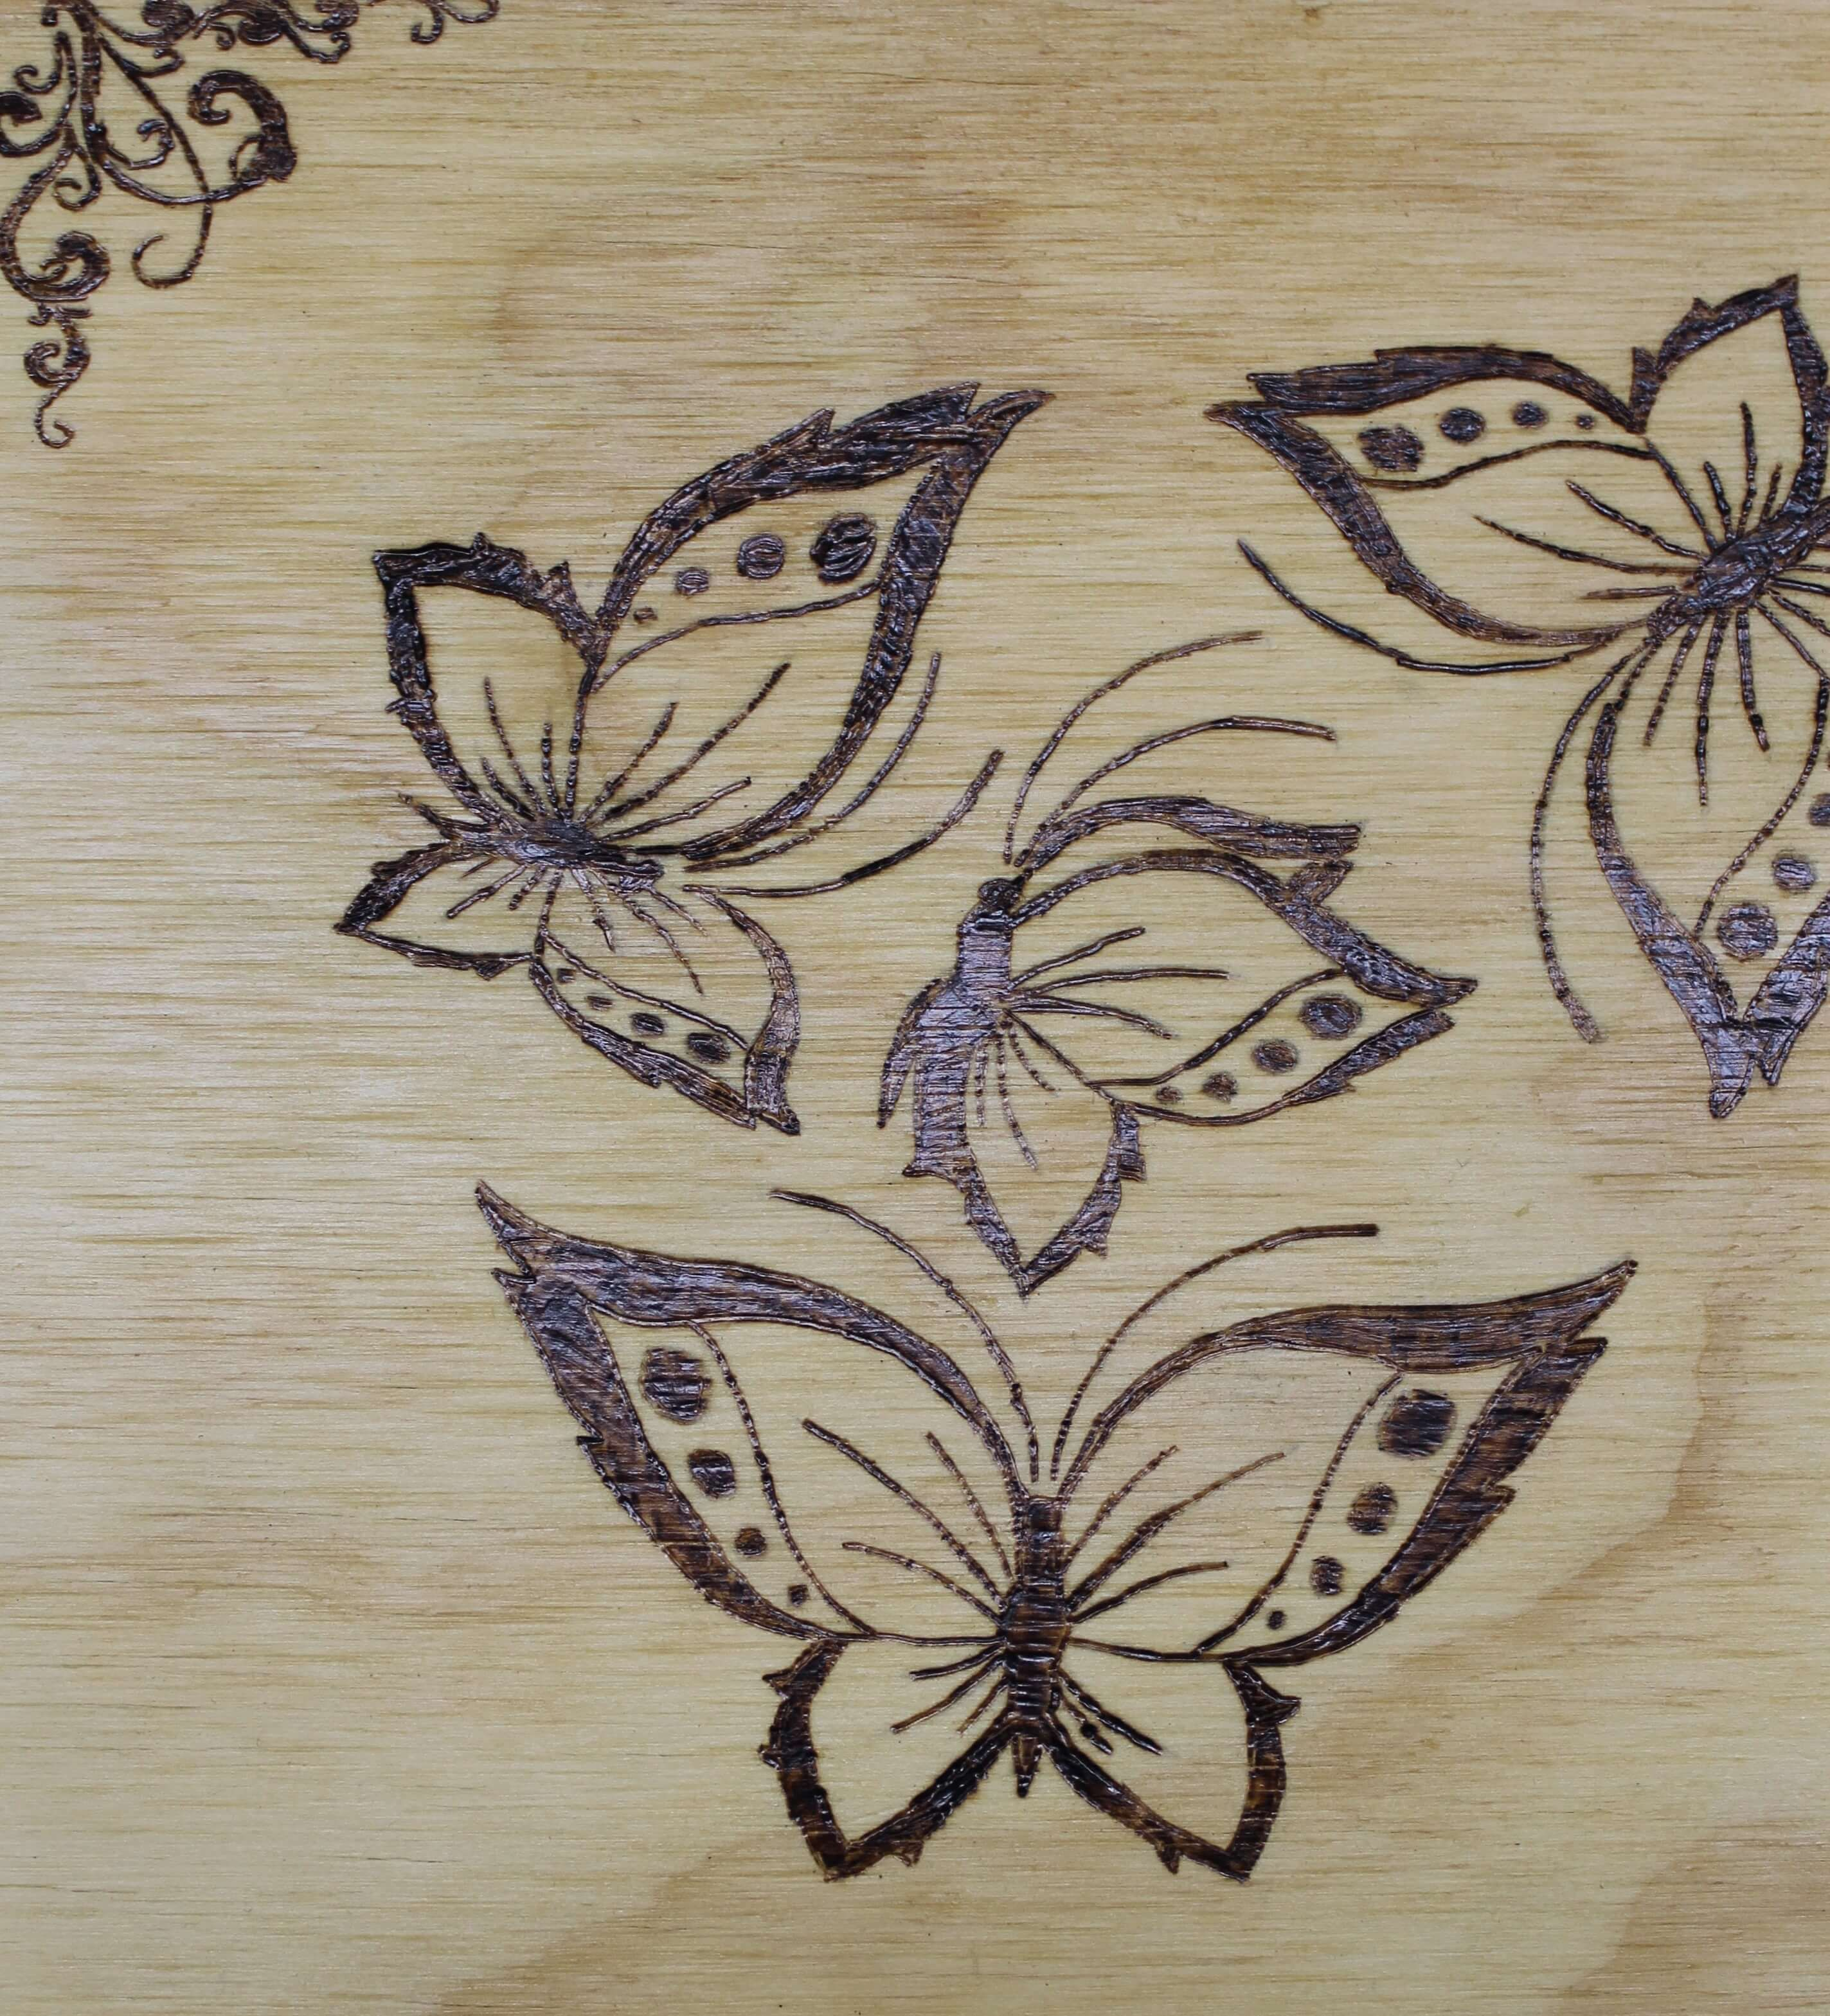 20 Free Printable Wood Burning Patterns For Beginners Wooden Thing